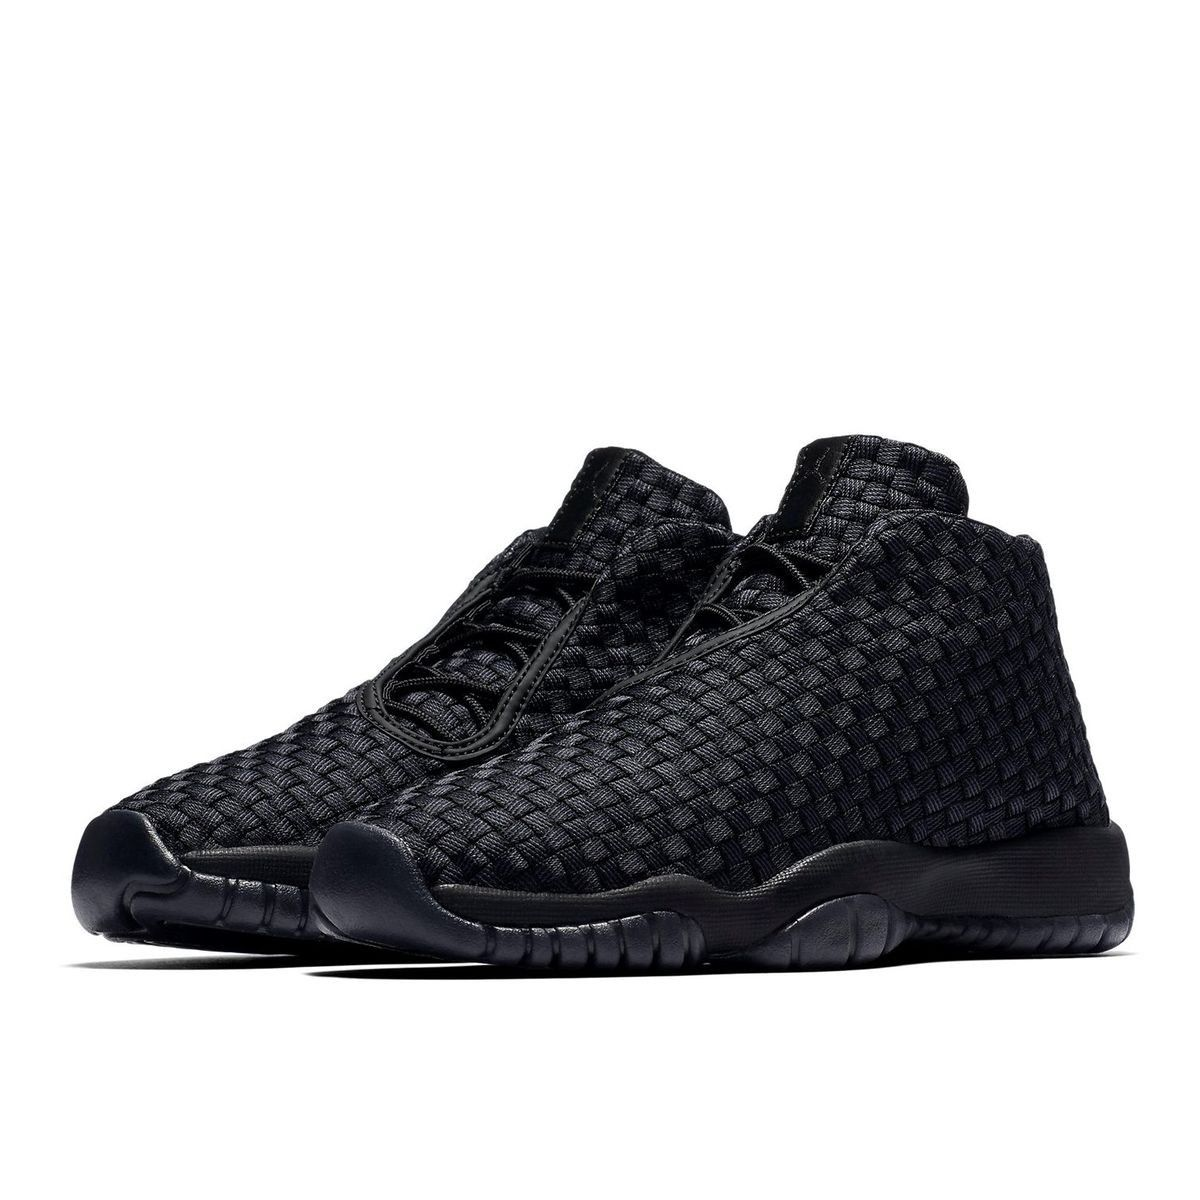 92121063a6a9b8 Basket Air Jordan Future Junior - Taille : 36;37;38;39;40 | Products ...